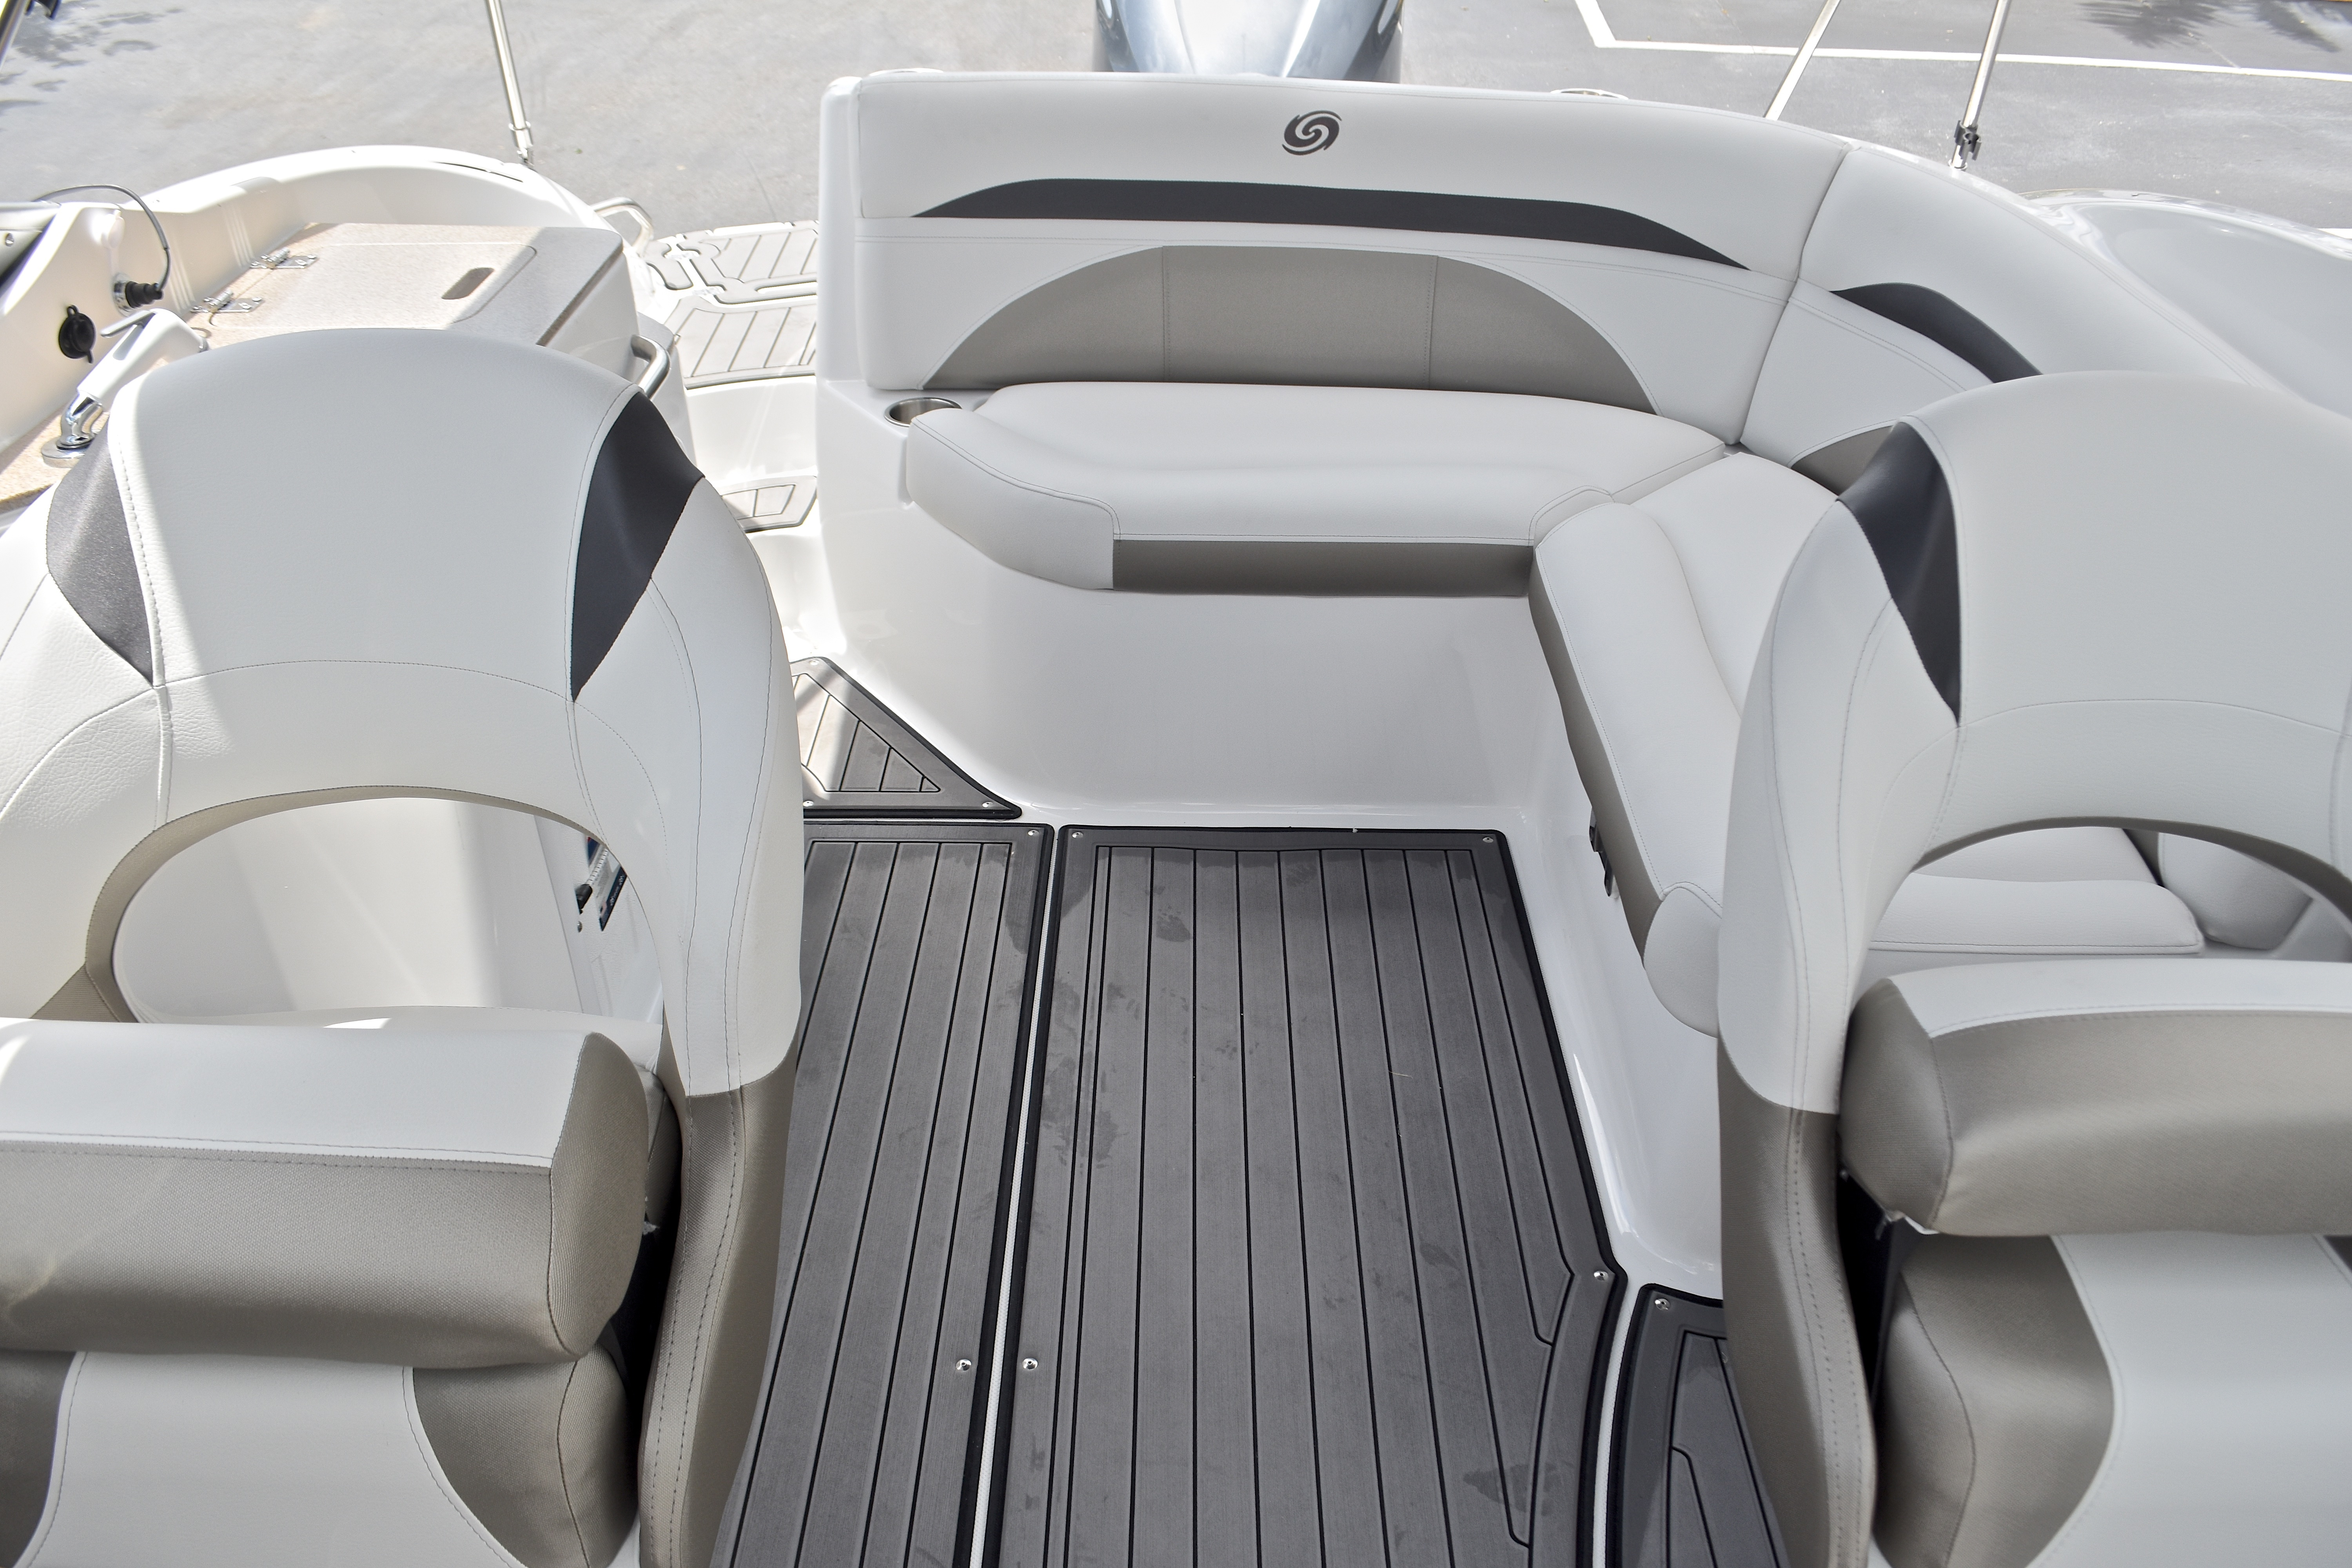 Thumbnail 15 for New 2017 Hurricane SunDeck SD 2400 OB boat for sale in West Palm Beach, FL